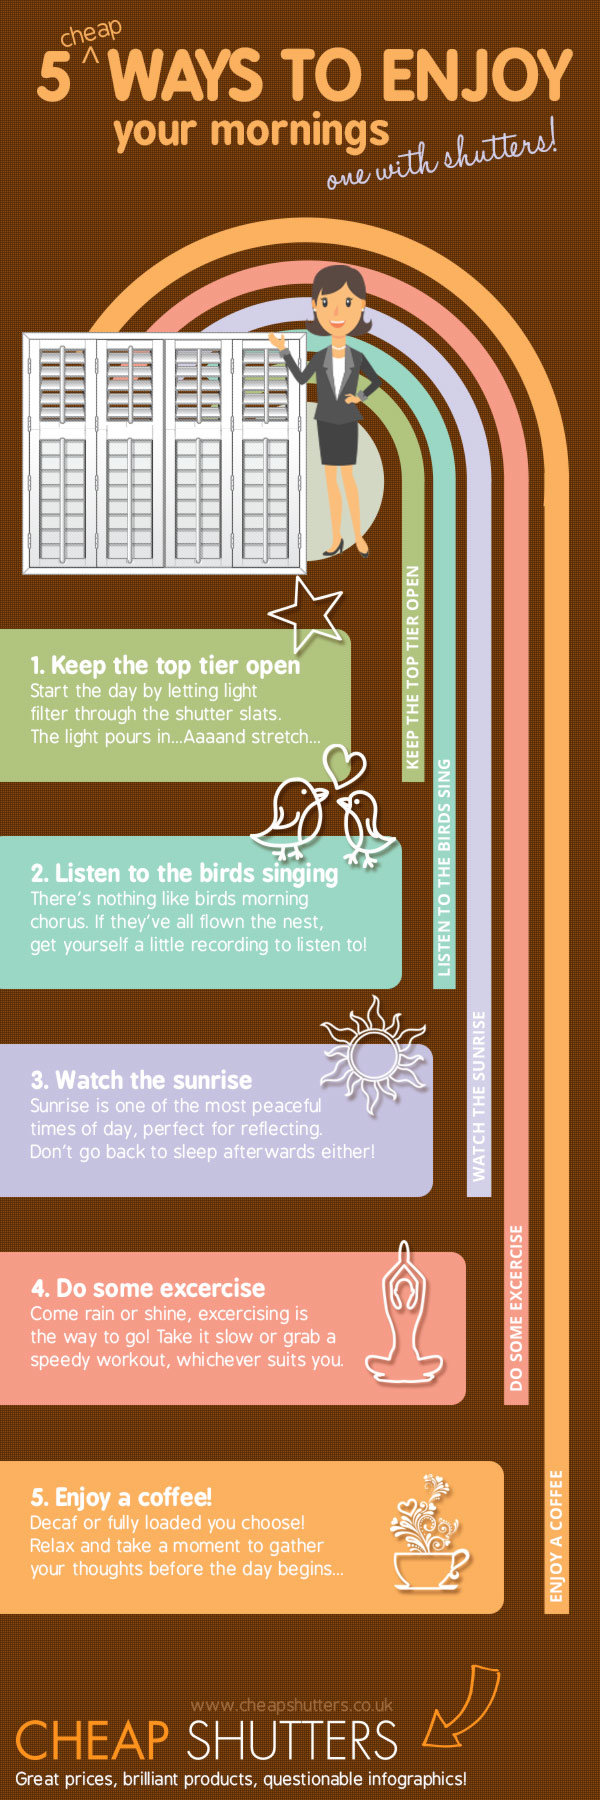 Infographic showing ways to enjoy mornings more cheaply including with shutters